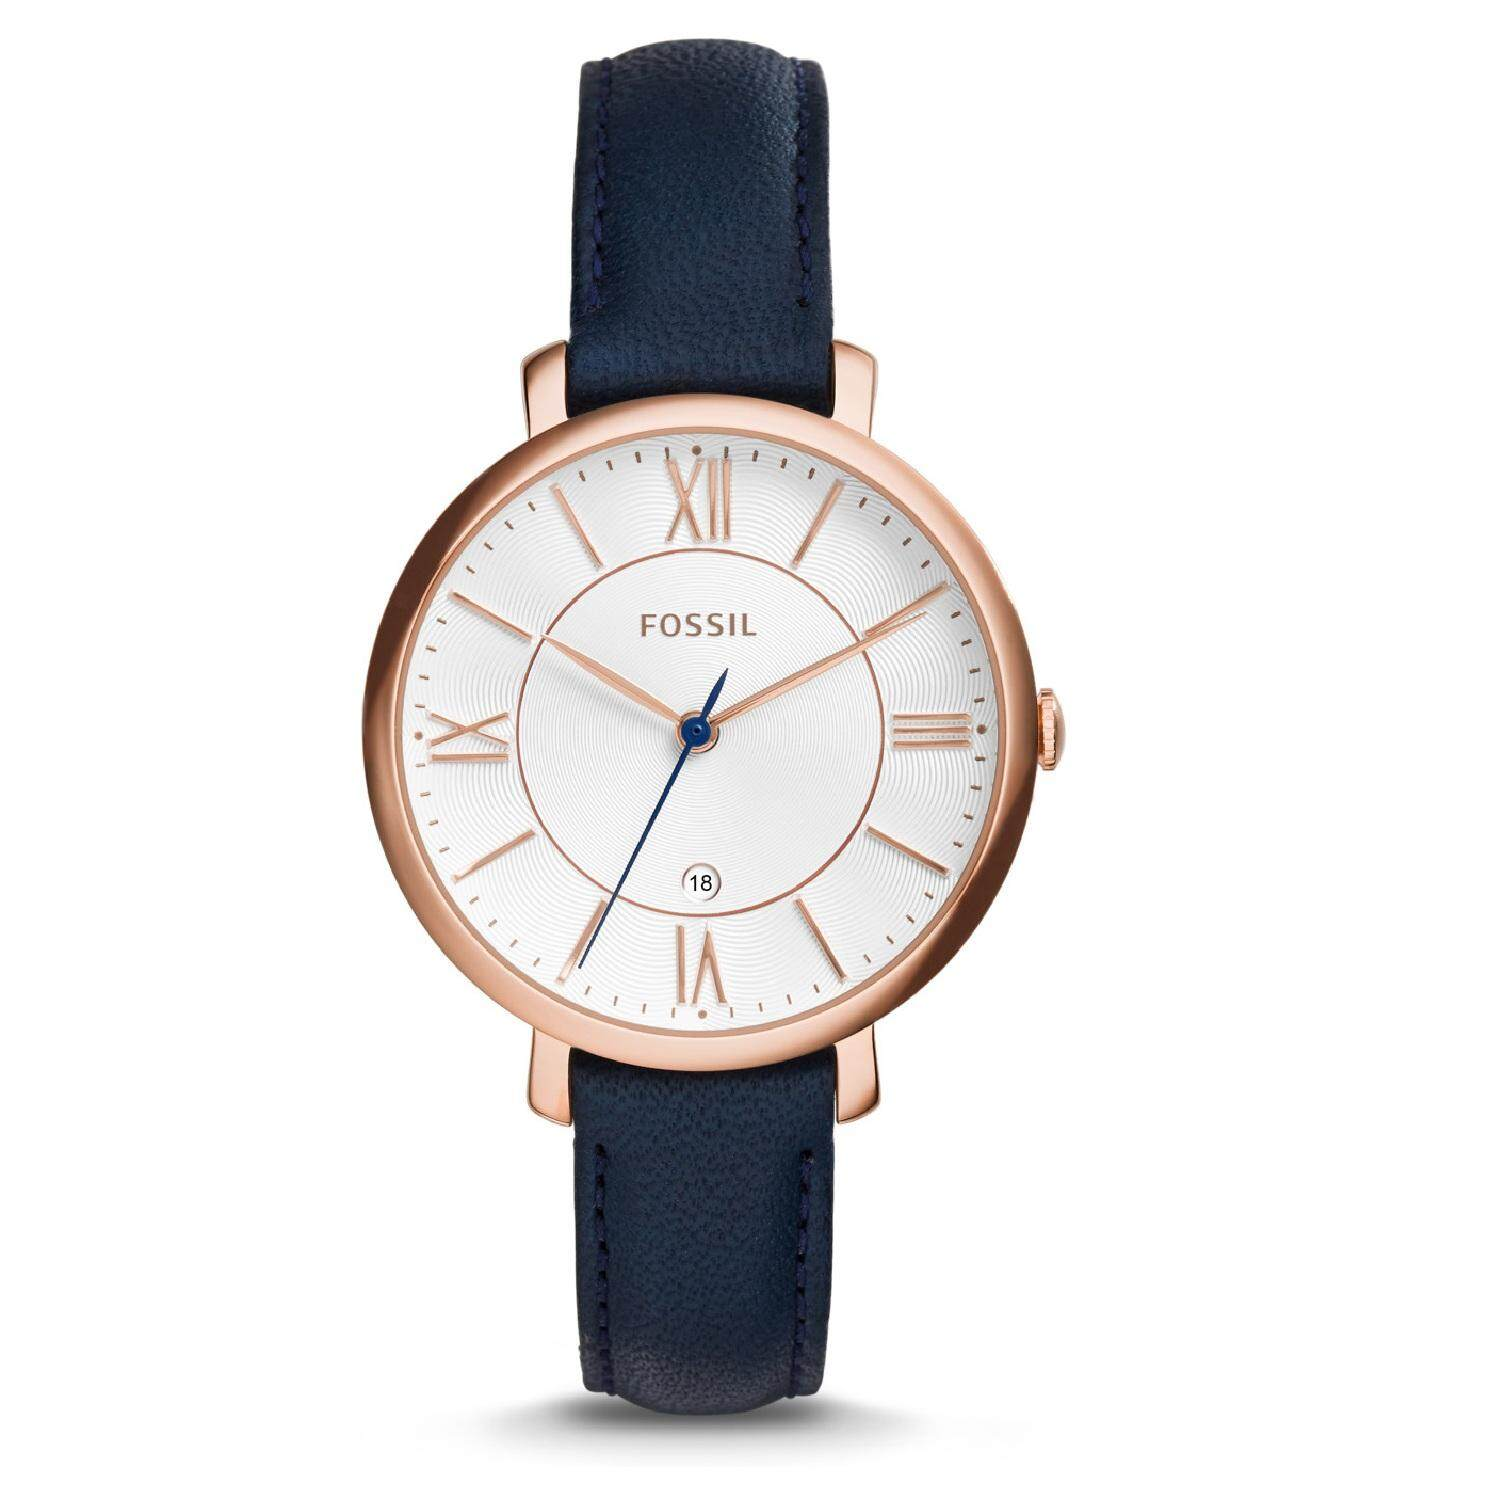 Fossil Womens ES3843 Jacqueline Rose Gold Case Navy Blue Leather Watch 100 Original